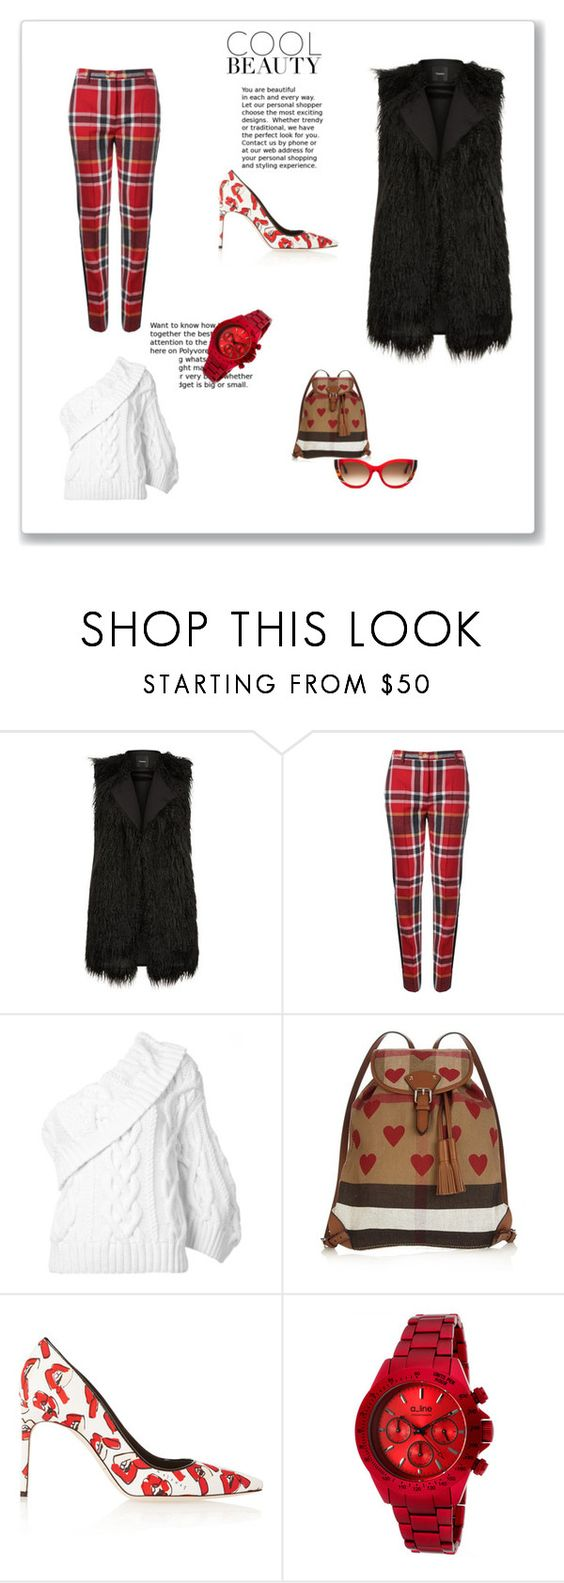 """""""GIVE'EM THE COLD SHOULDER THIS SEASON, AND HEAT UP THE ROOM"""" by g-vah-styles ❤ liked on Polyvore featuring Theory, Vivienne Westwood Red Label, Rosie Assoulin, Burberry, Brian Atwood and Thierry Lasry"""